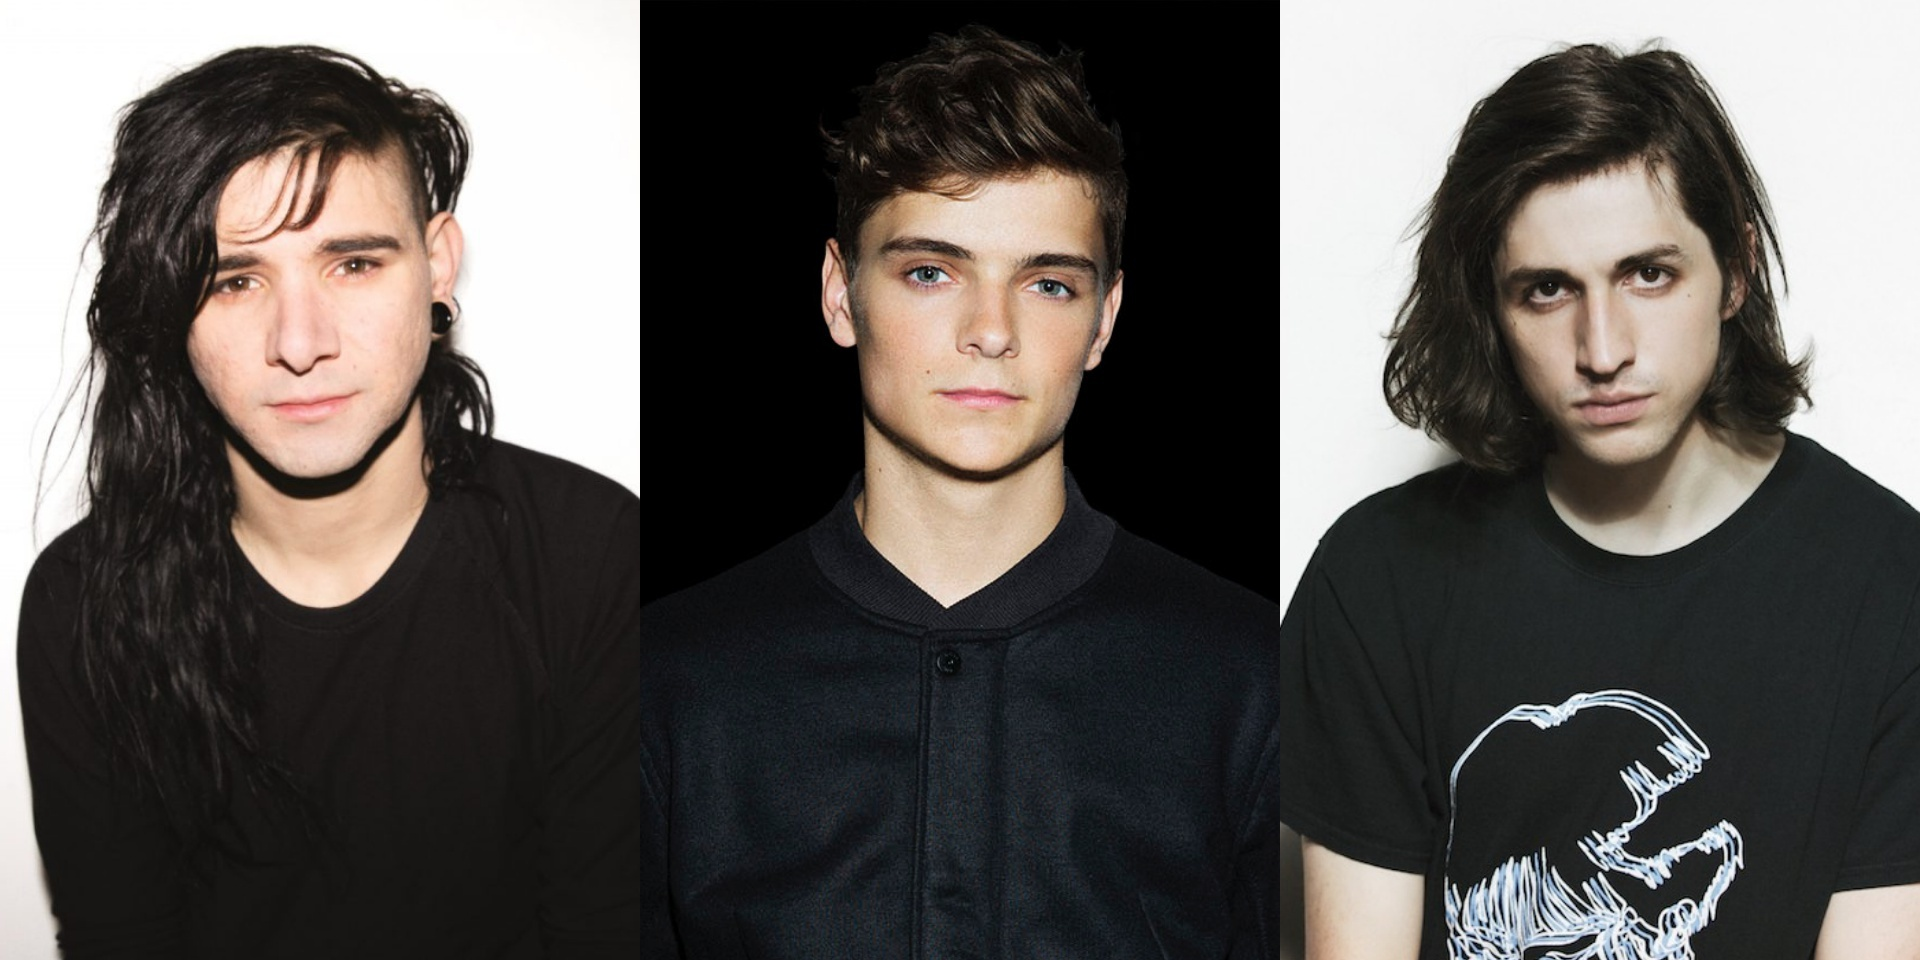 Ultra Singapore announces first wave lineup: Martin Garrix, Porter Robinson, Skrillex to headline